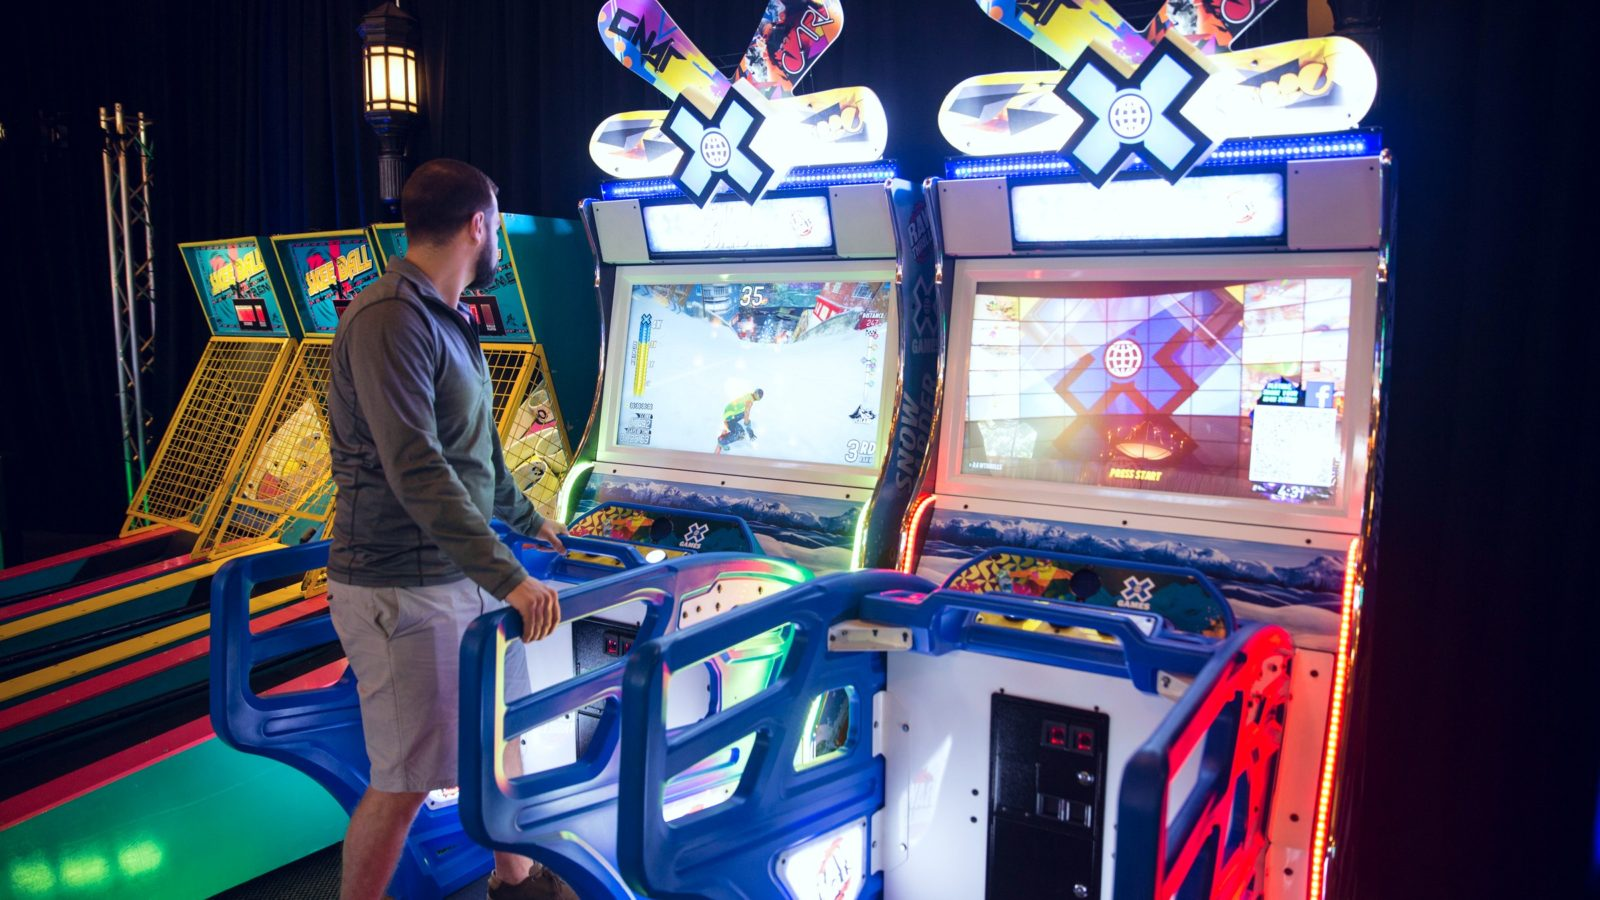 Raw Thrills X Games Snowboarder Arcade Game Rental